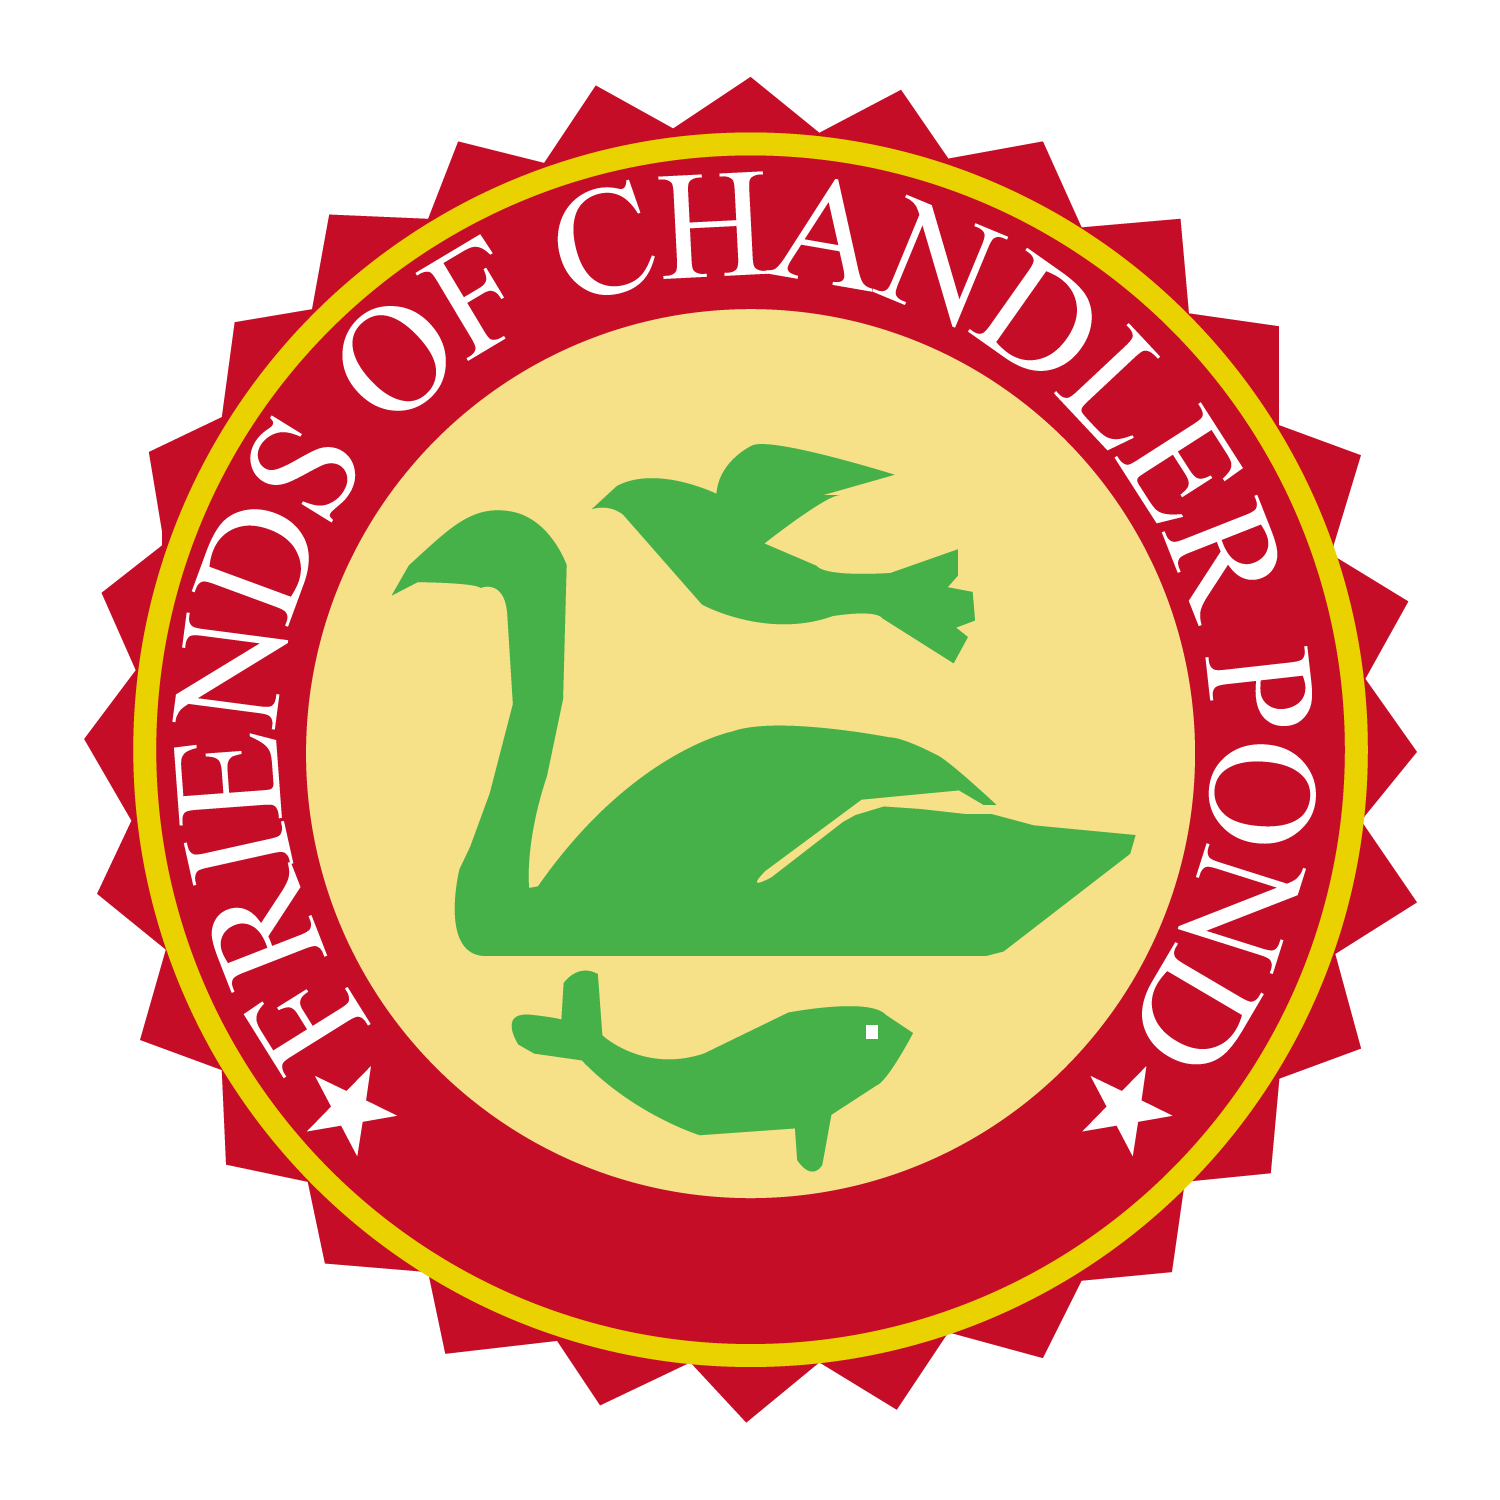 Chandler Pond Preservation Society